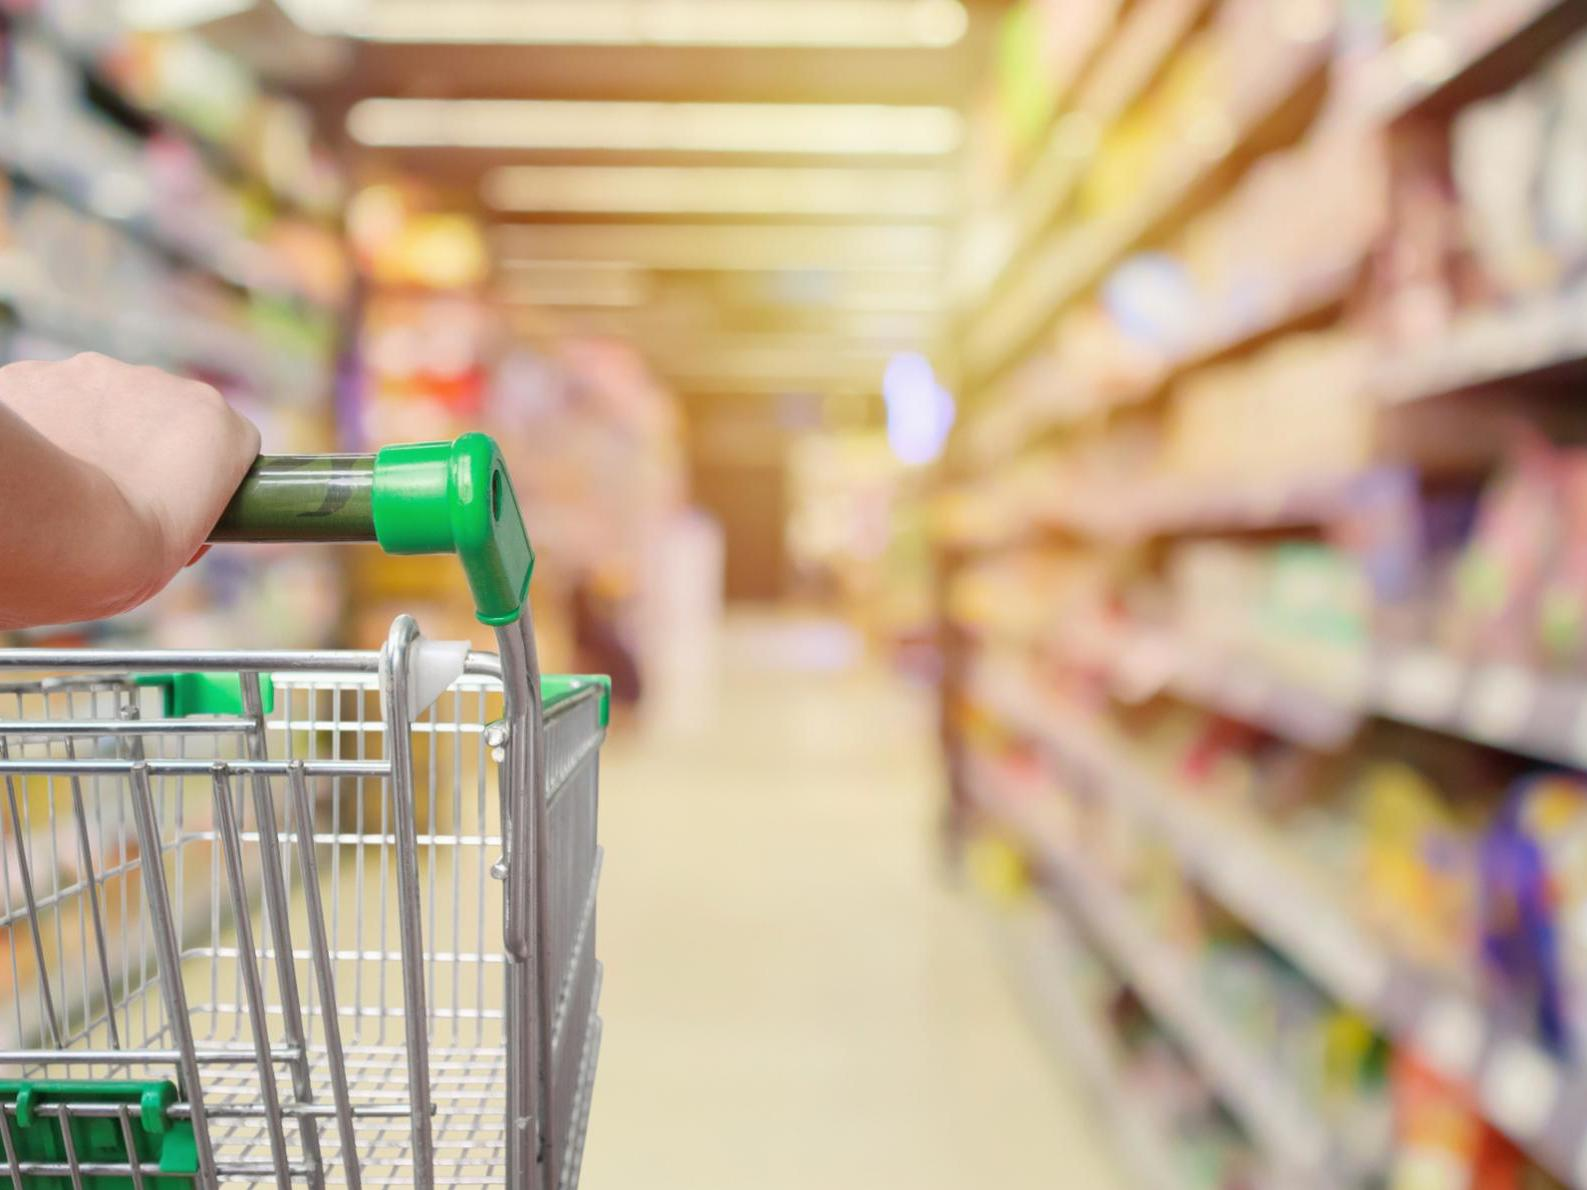 Household spending falling during lockdown but groceries, alcohol and hobby sectors boosted by 'isolation economy'